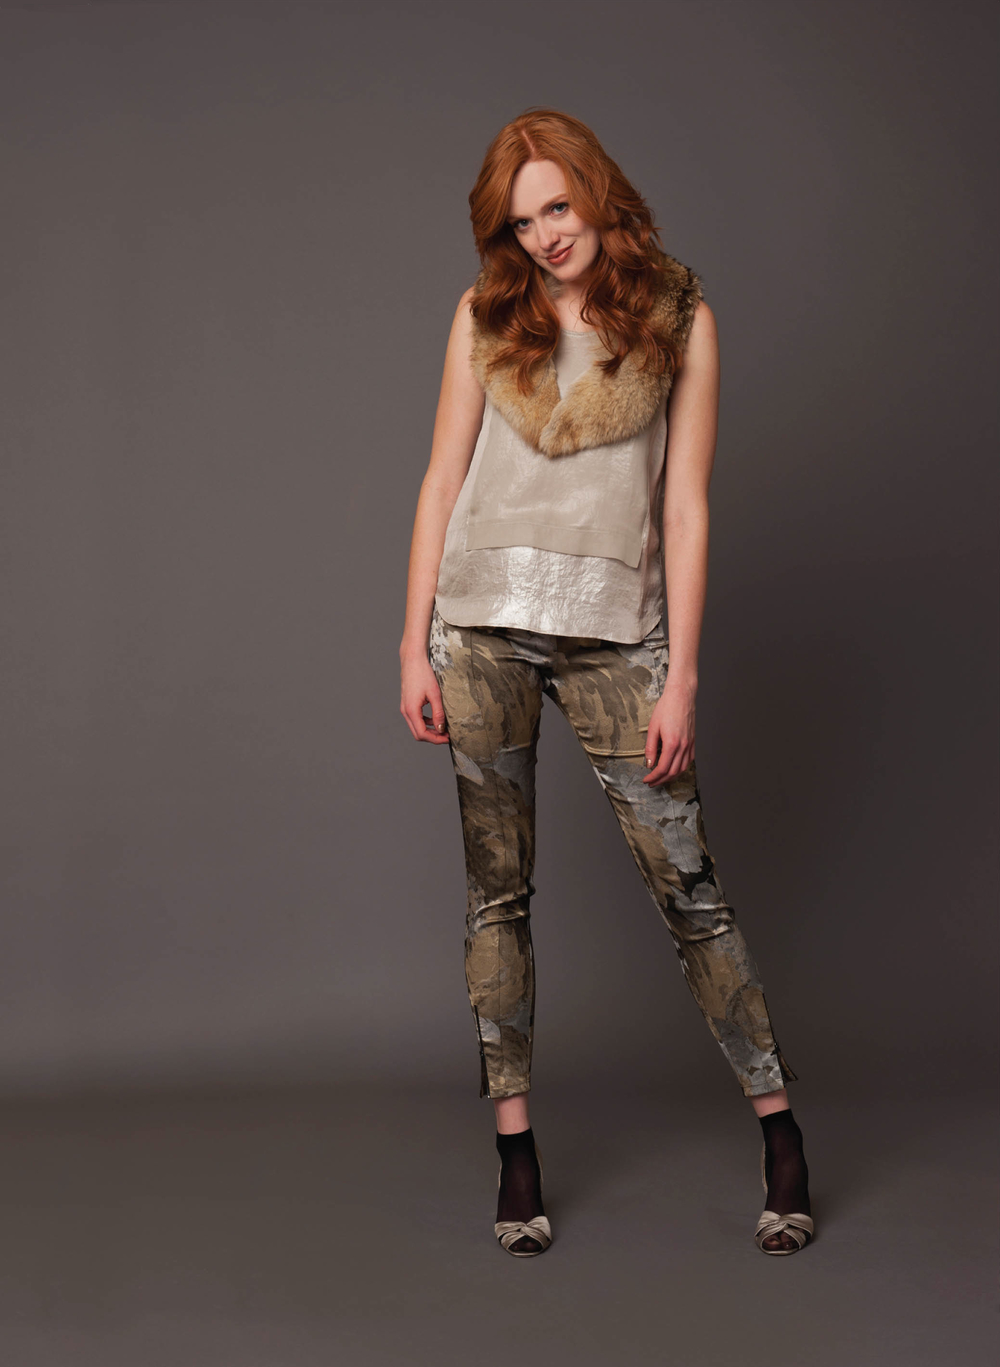 sleeveless top with chiffon overlay  pale taupe shimmer   stretch floral jacquard skinny pant with zips  neutral shimmer   fur collar with hook  dark blonde